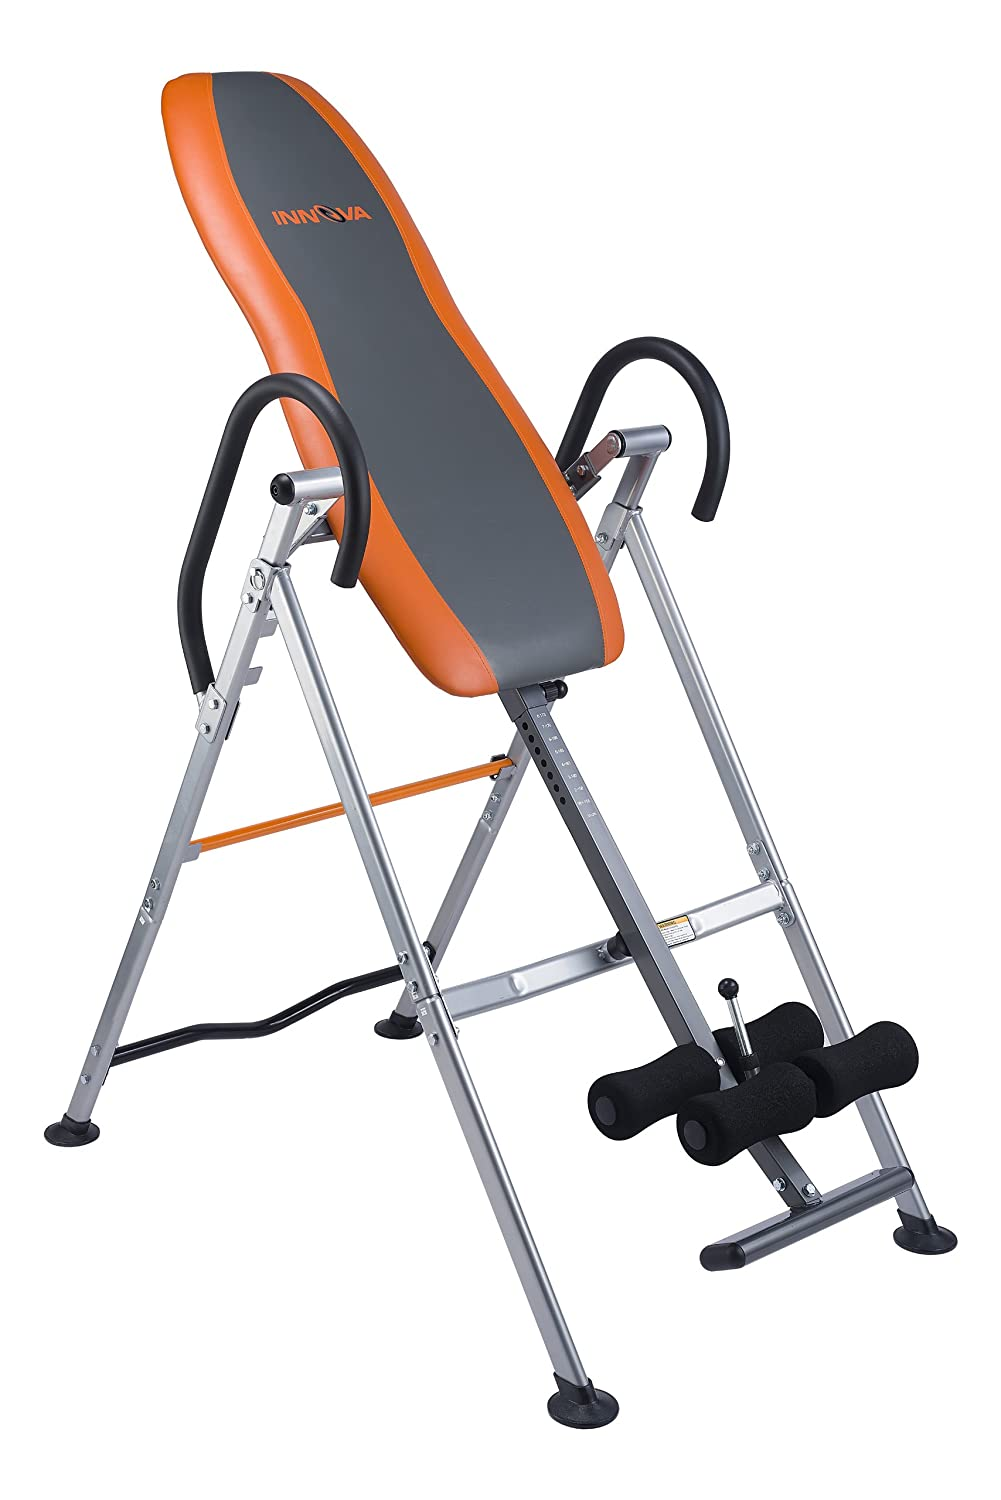 Innova fitness itx9300 deluxe inversion therapy table with for Table inversion